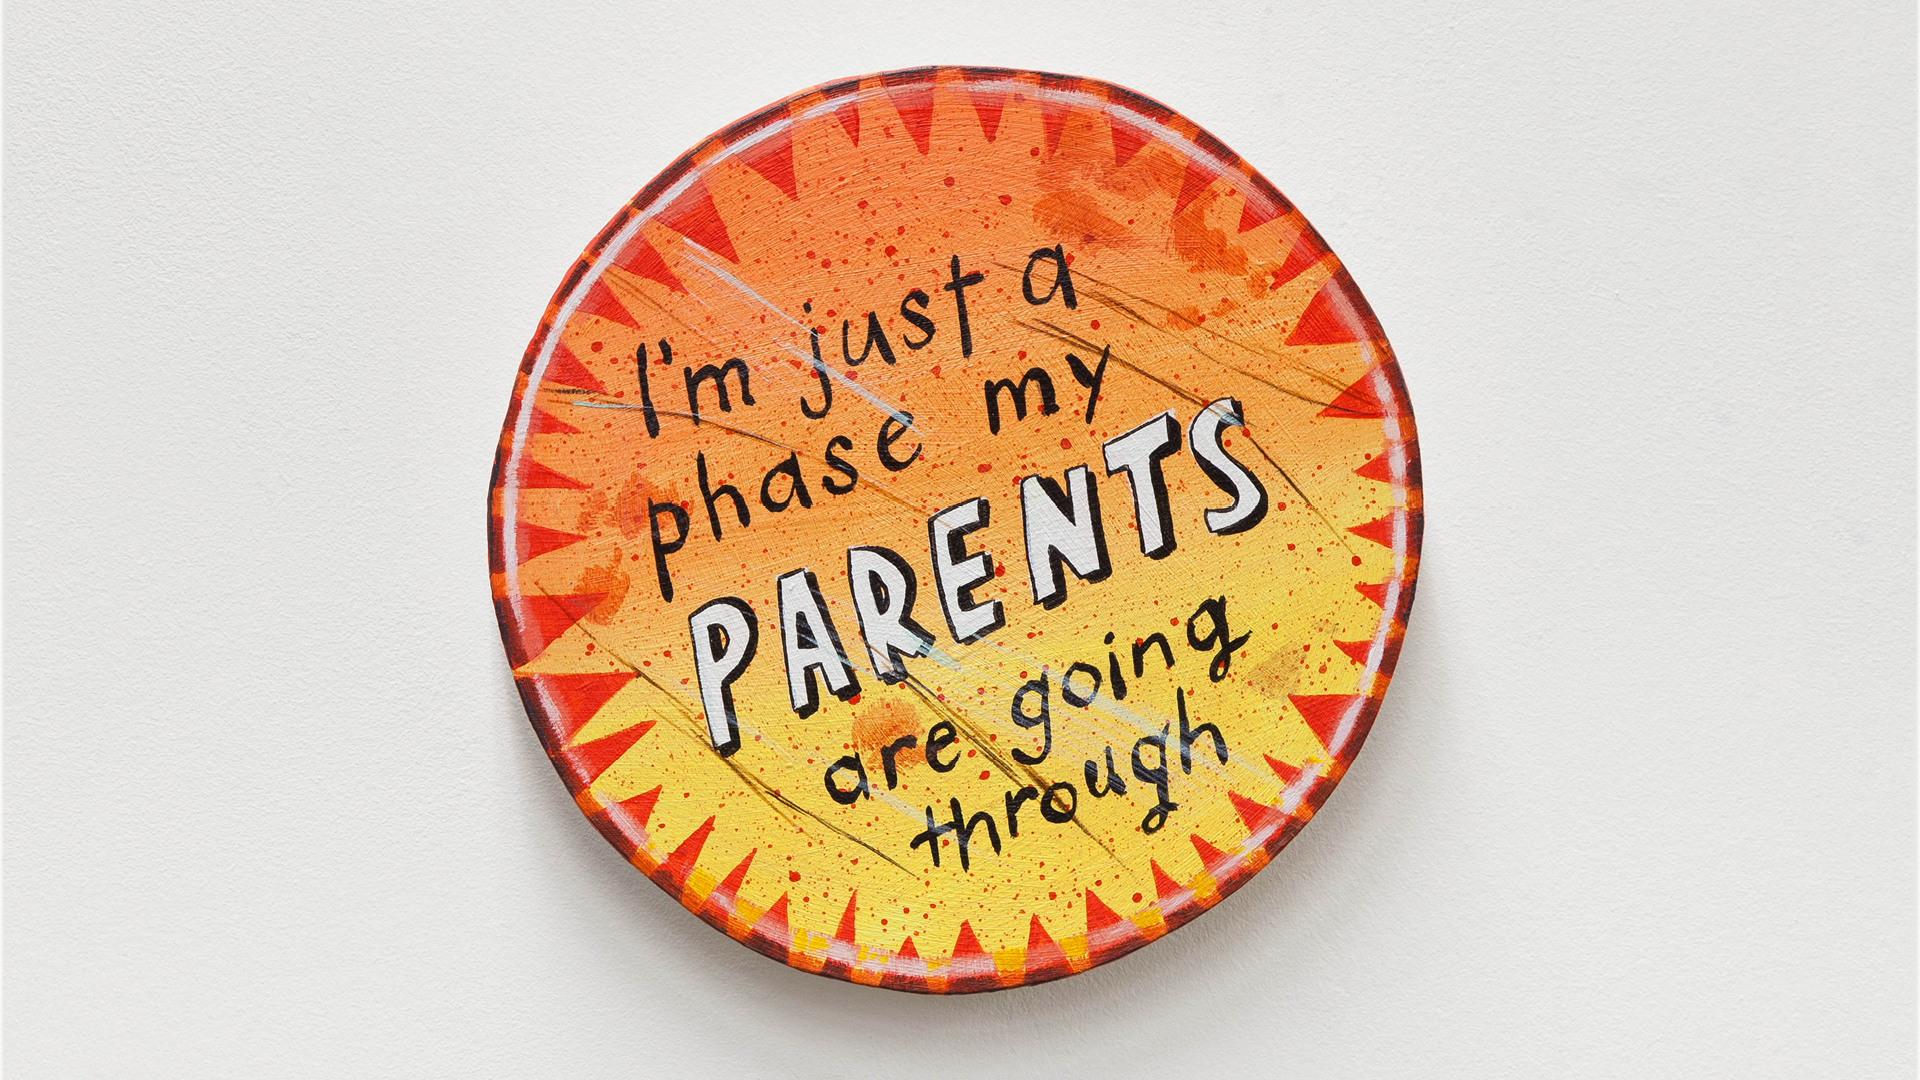 Flo Brooks, I'm just a phase my parents are going through, 2018, Courtesy of the artist and Project Native Informant London| Kiss my genders| STIR